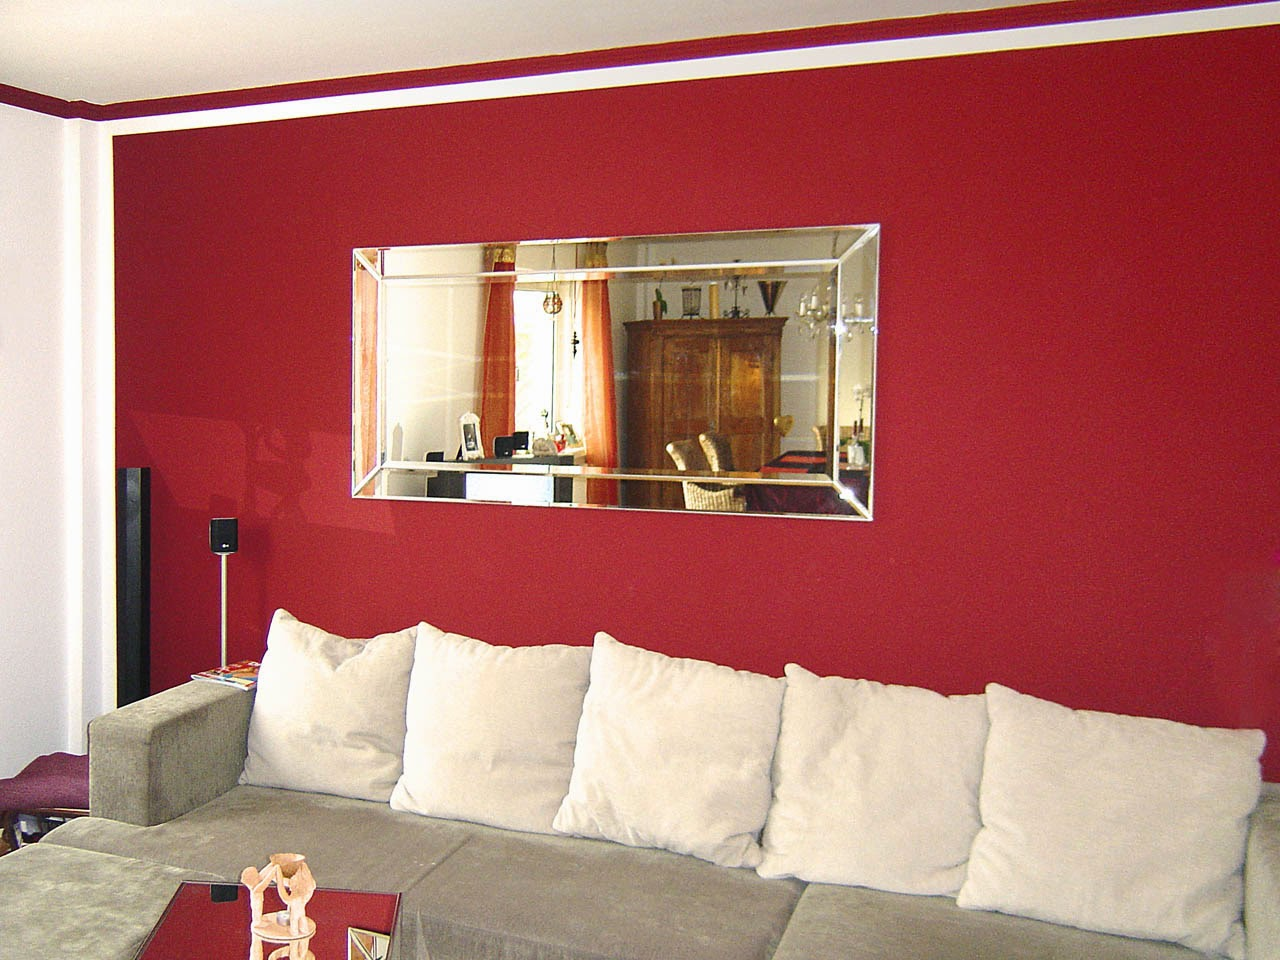 Paredes interiores beautiful paredes interiores with - Tipos de pinturas para paredes interiores ...